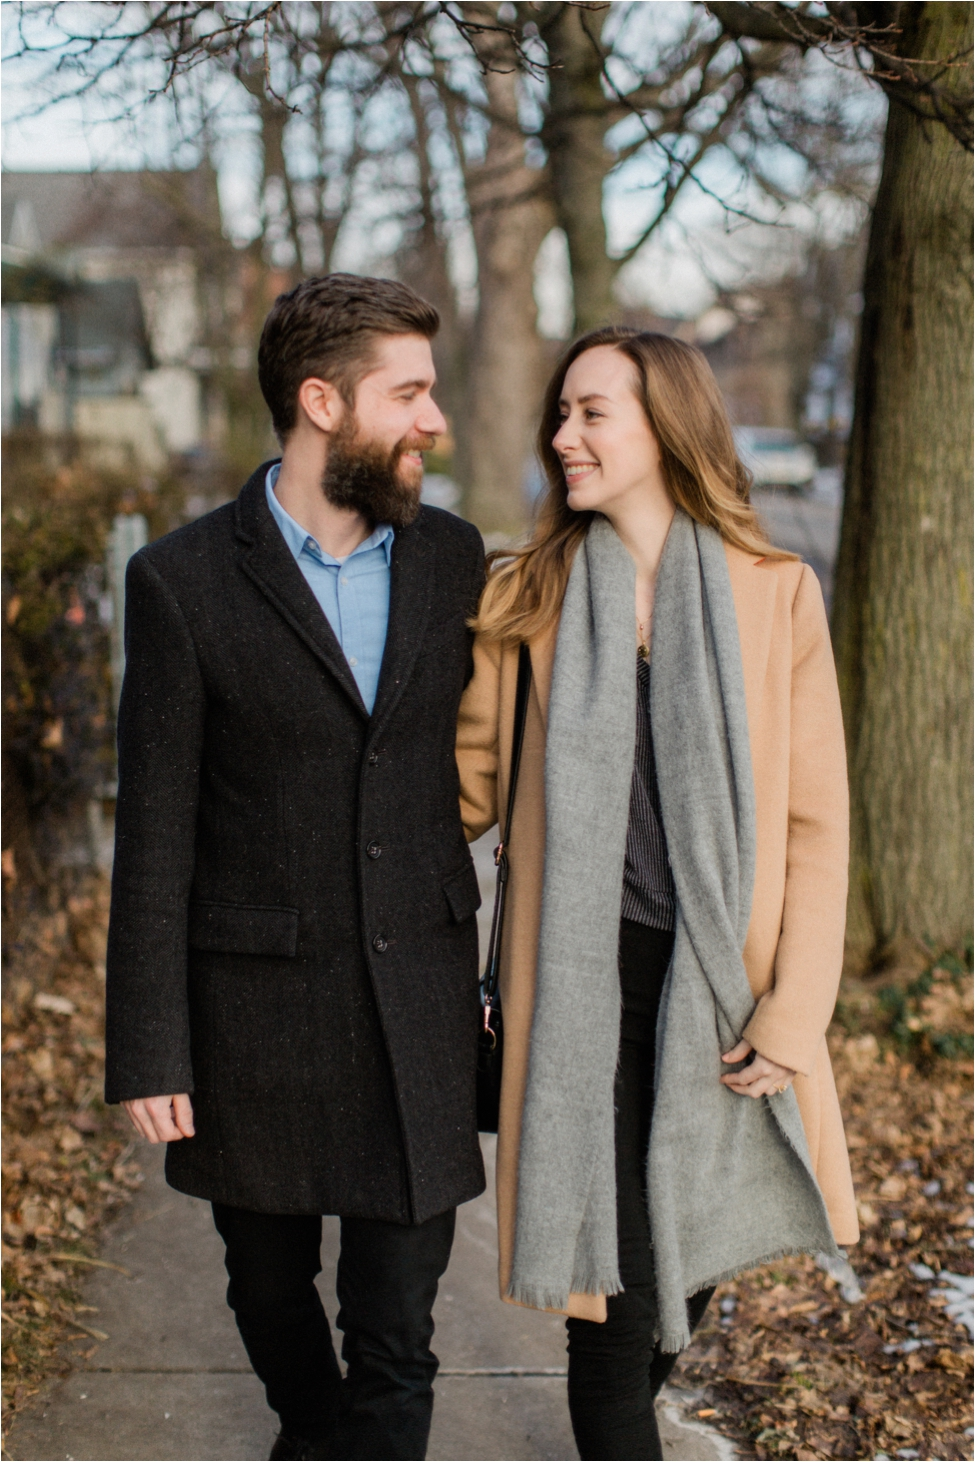 Simone and Josh | Winter Engagement Session Buffalo New York | Shaw Photography Co.